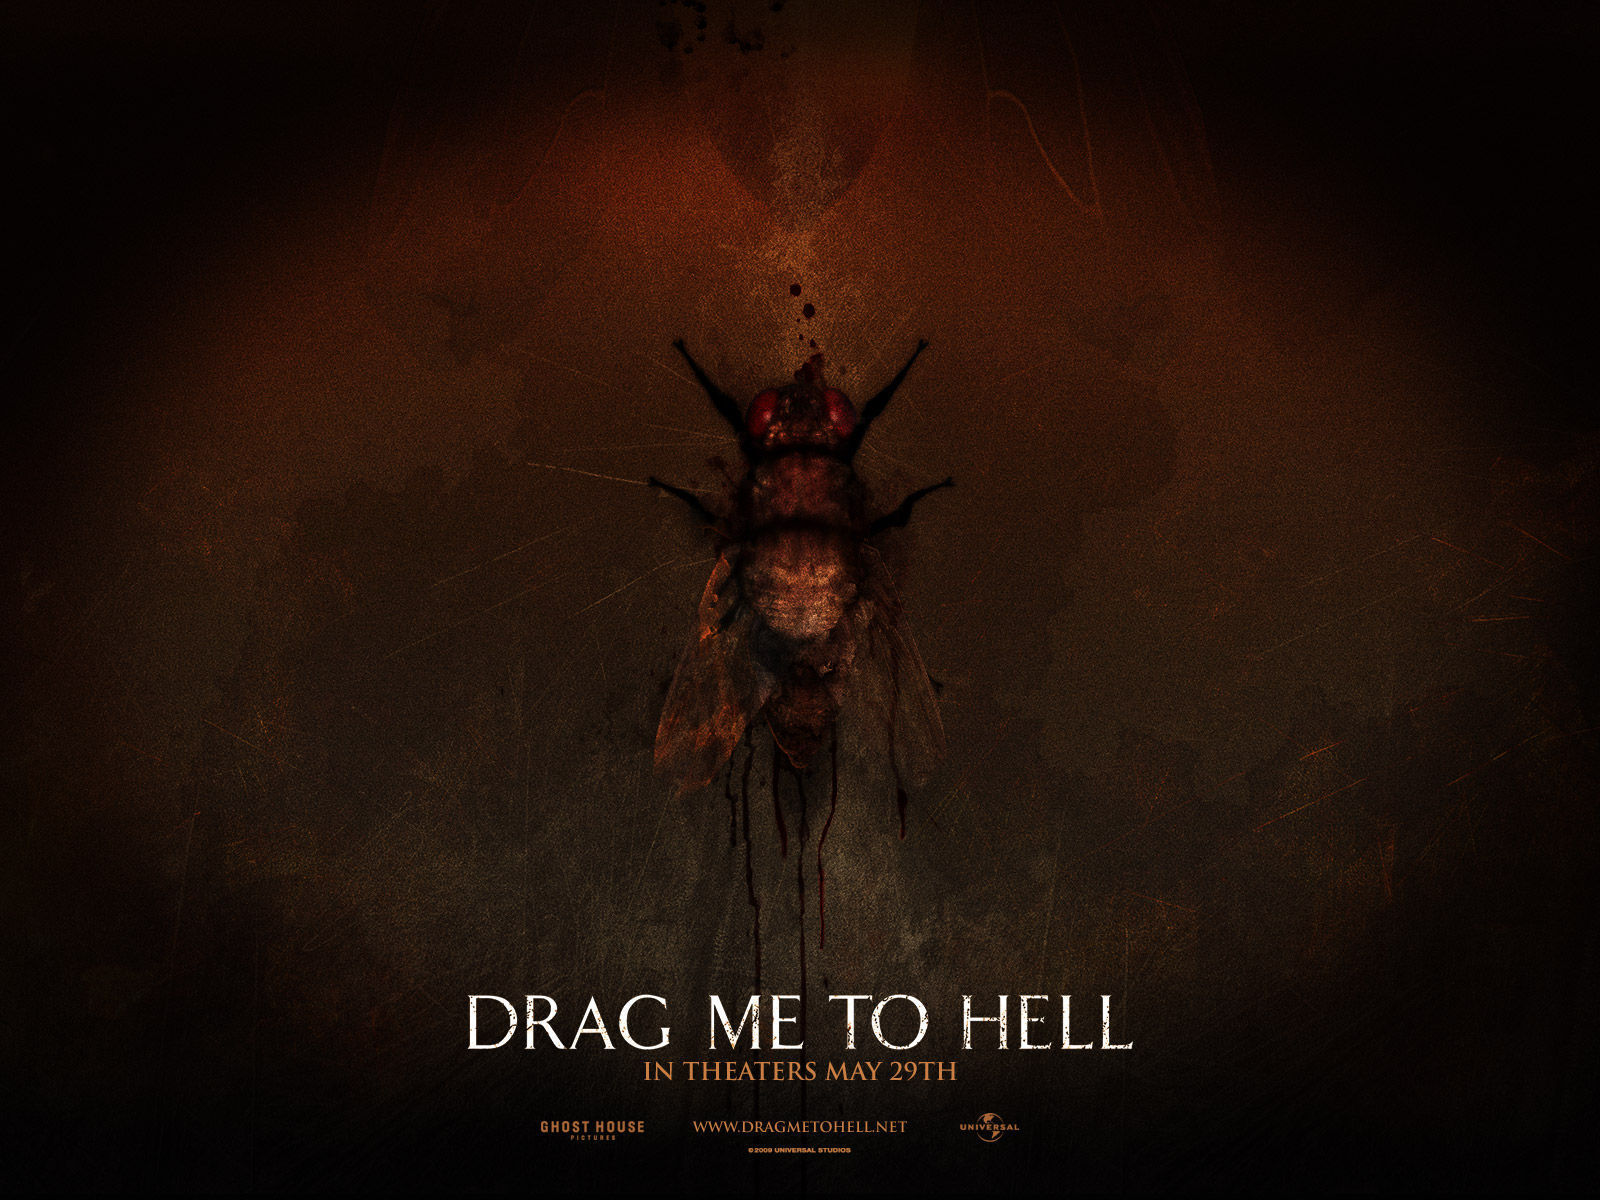 Drag Me to Hell wallpapers - Horror Movies 1600x1200 1024x768 800x600